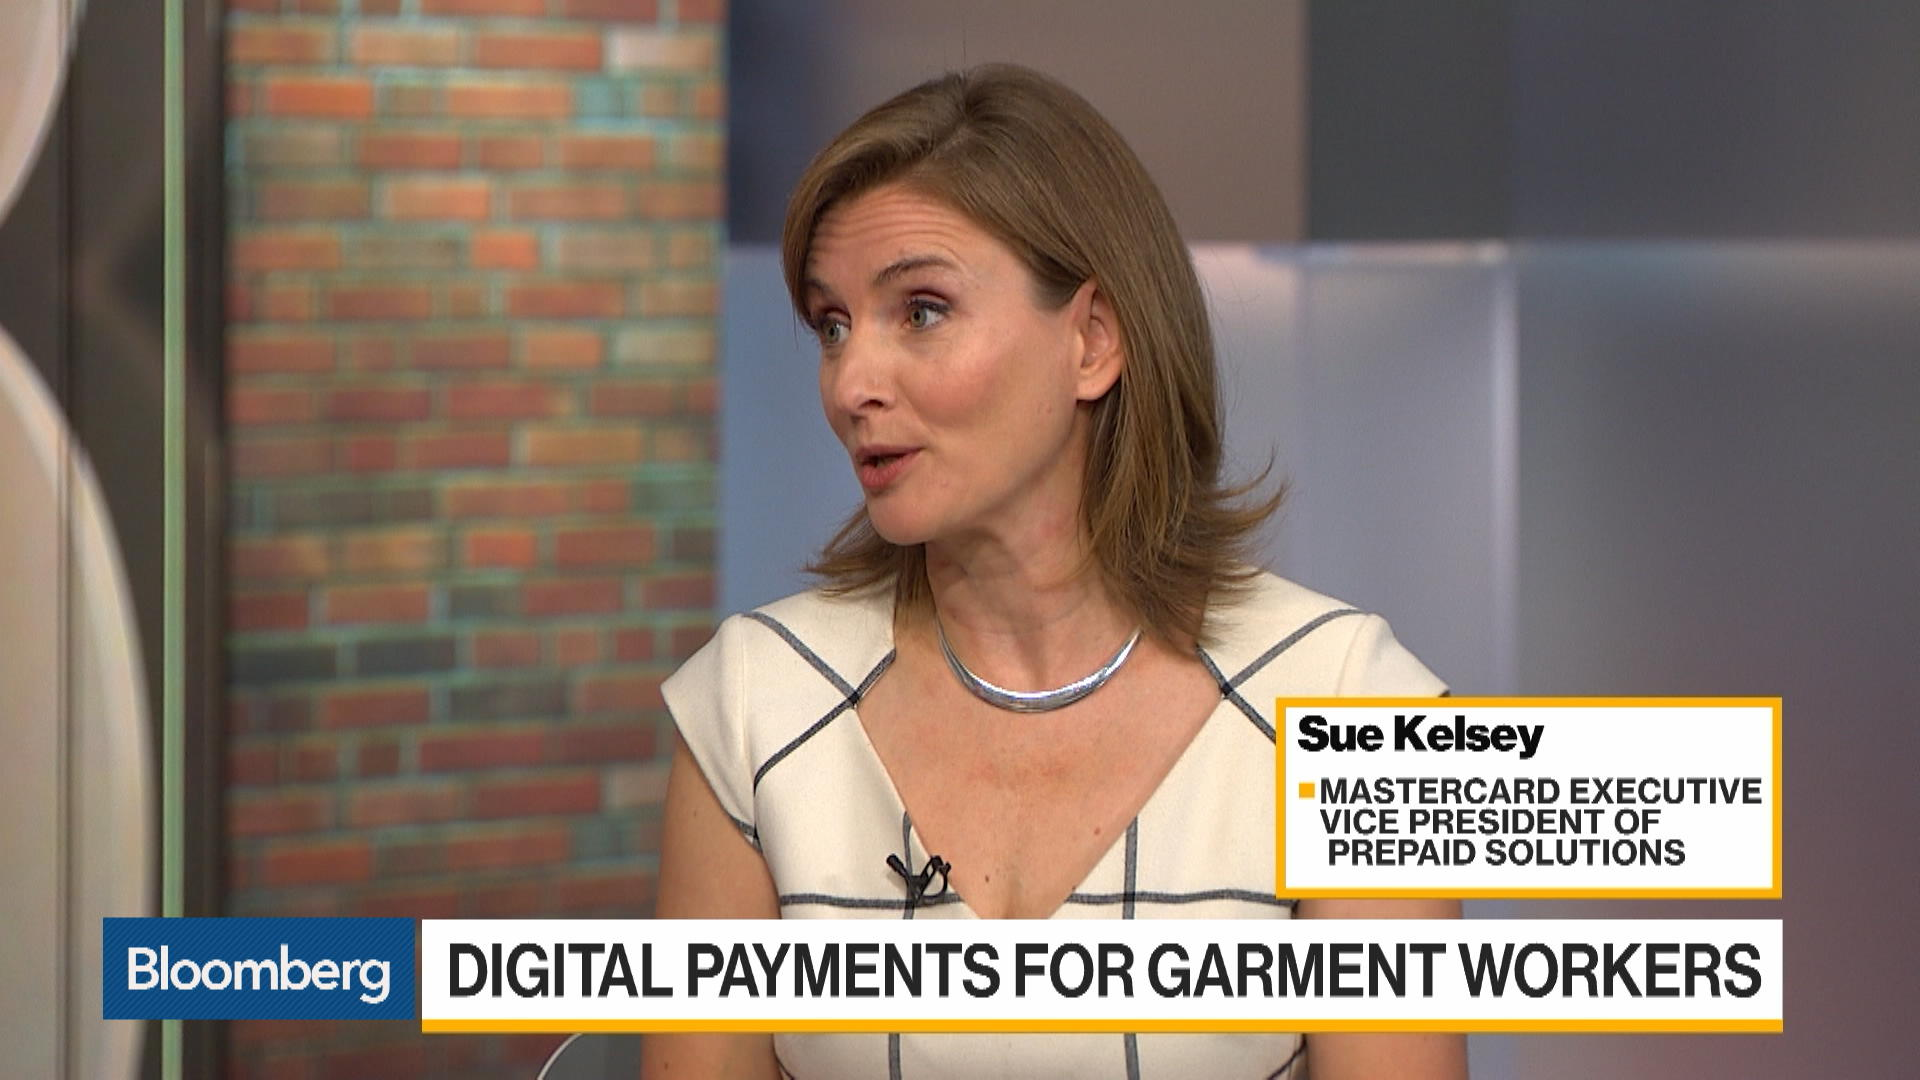 Digital Economy: How Mastercard Is Bringing Digital Payments to the Global Garment Industry